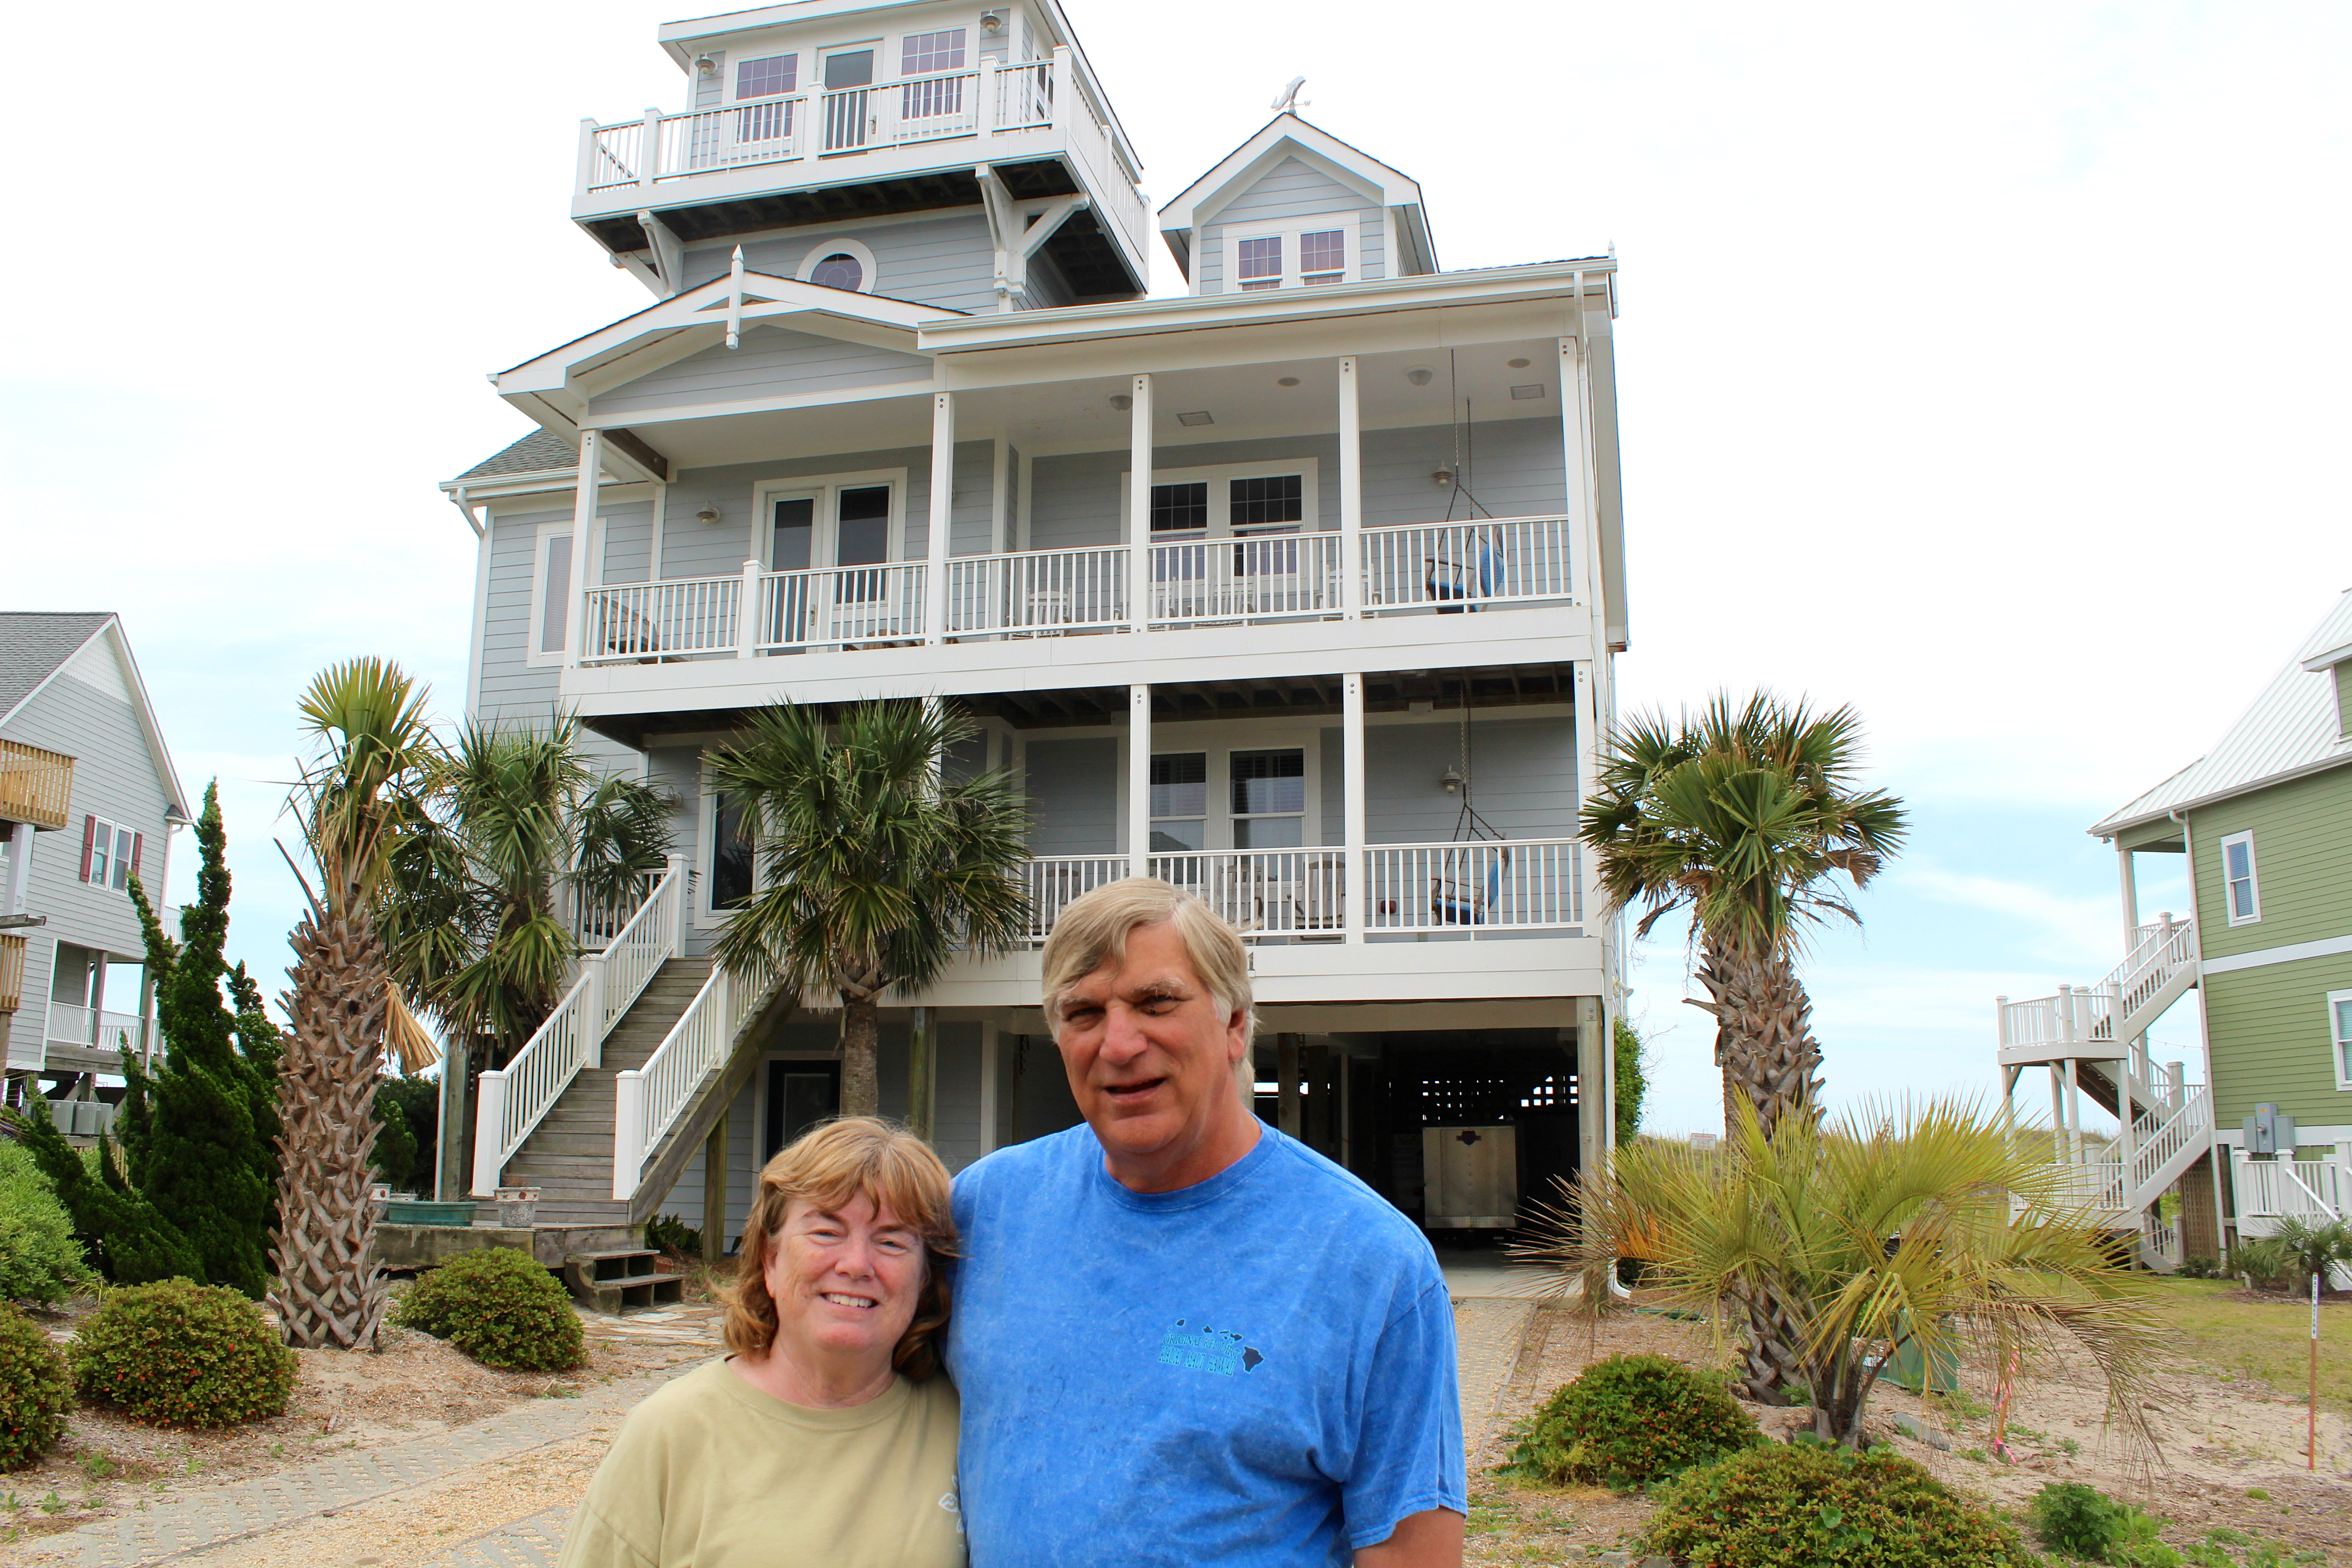 Frustrated Homeowners Say Expedias Homeaway Changes Dramatically